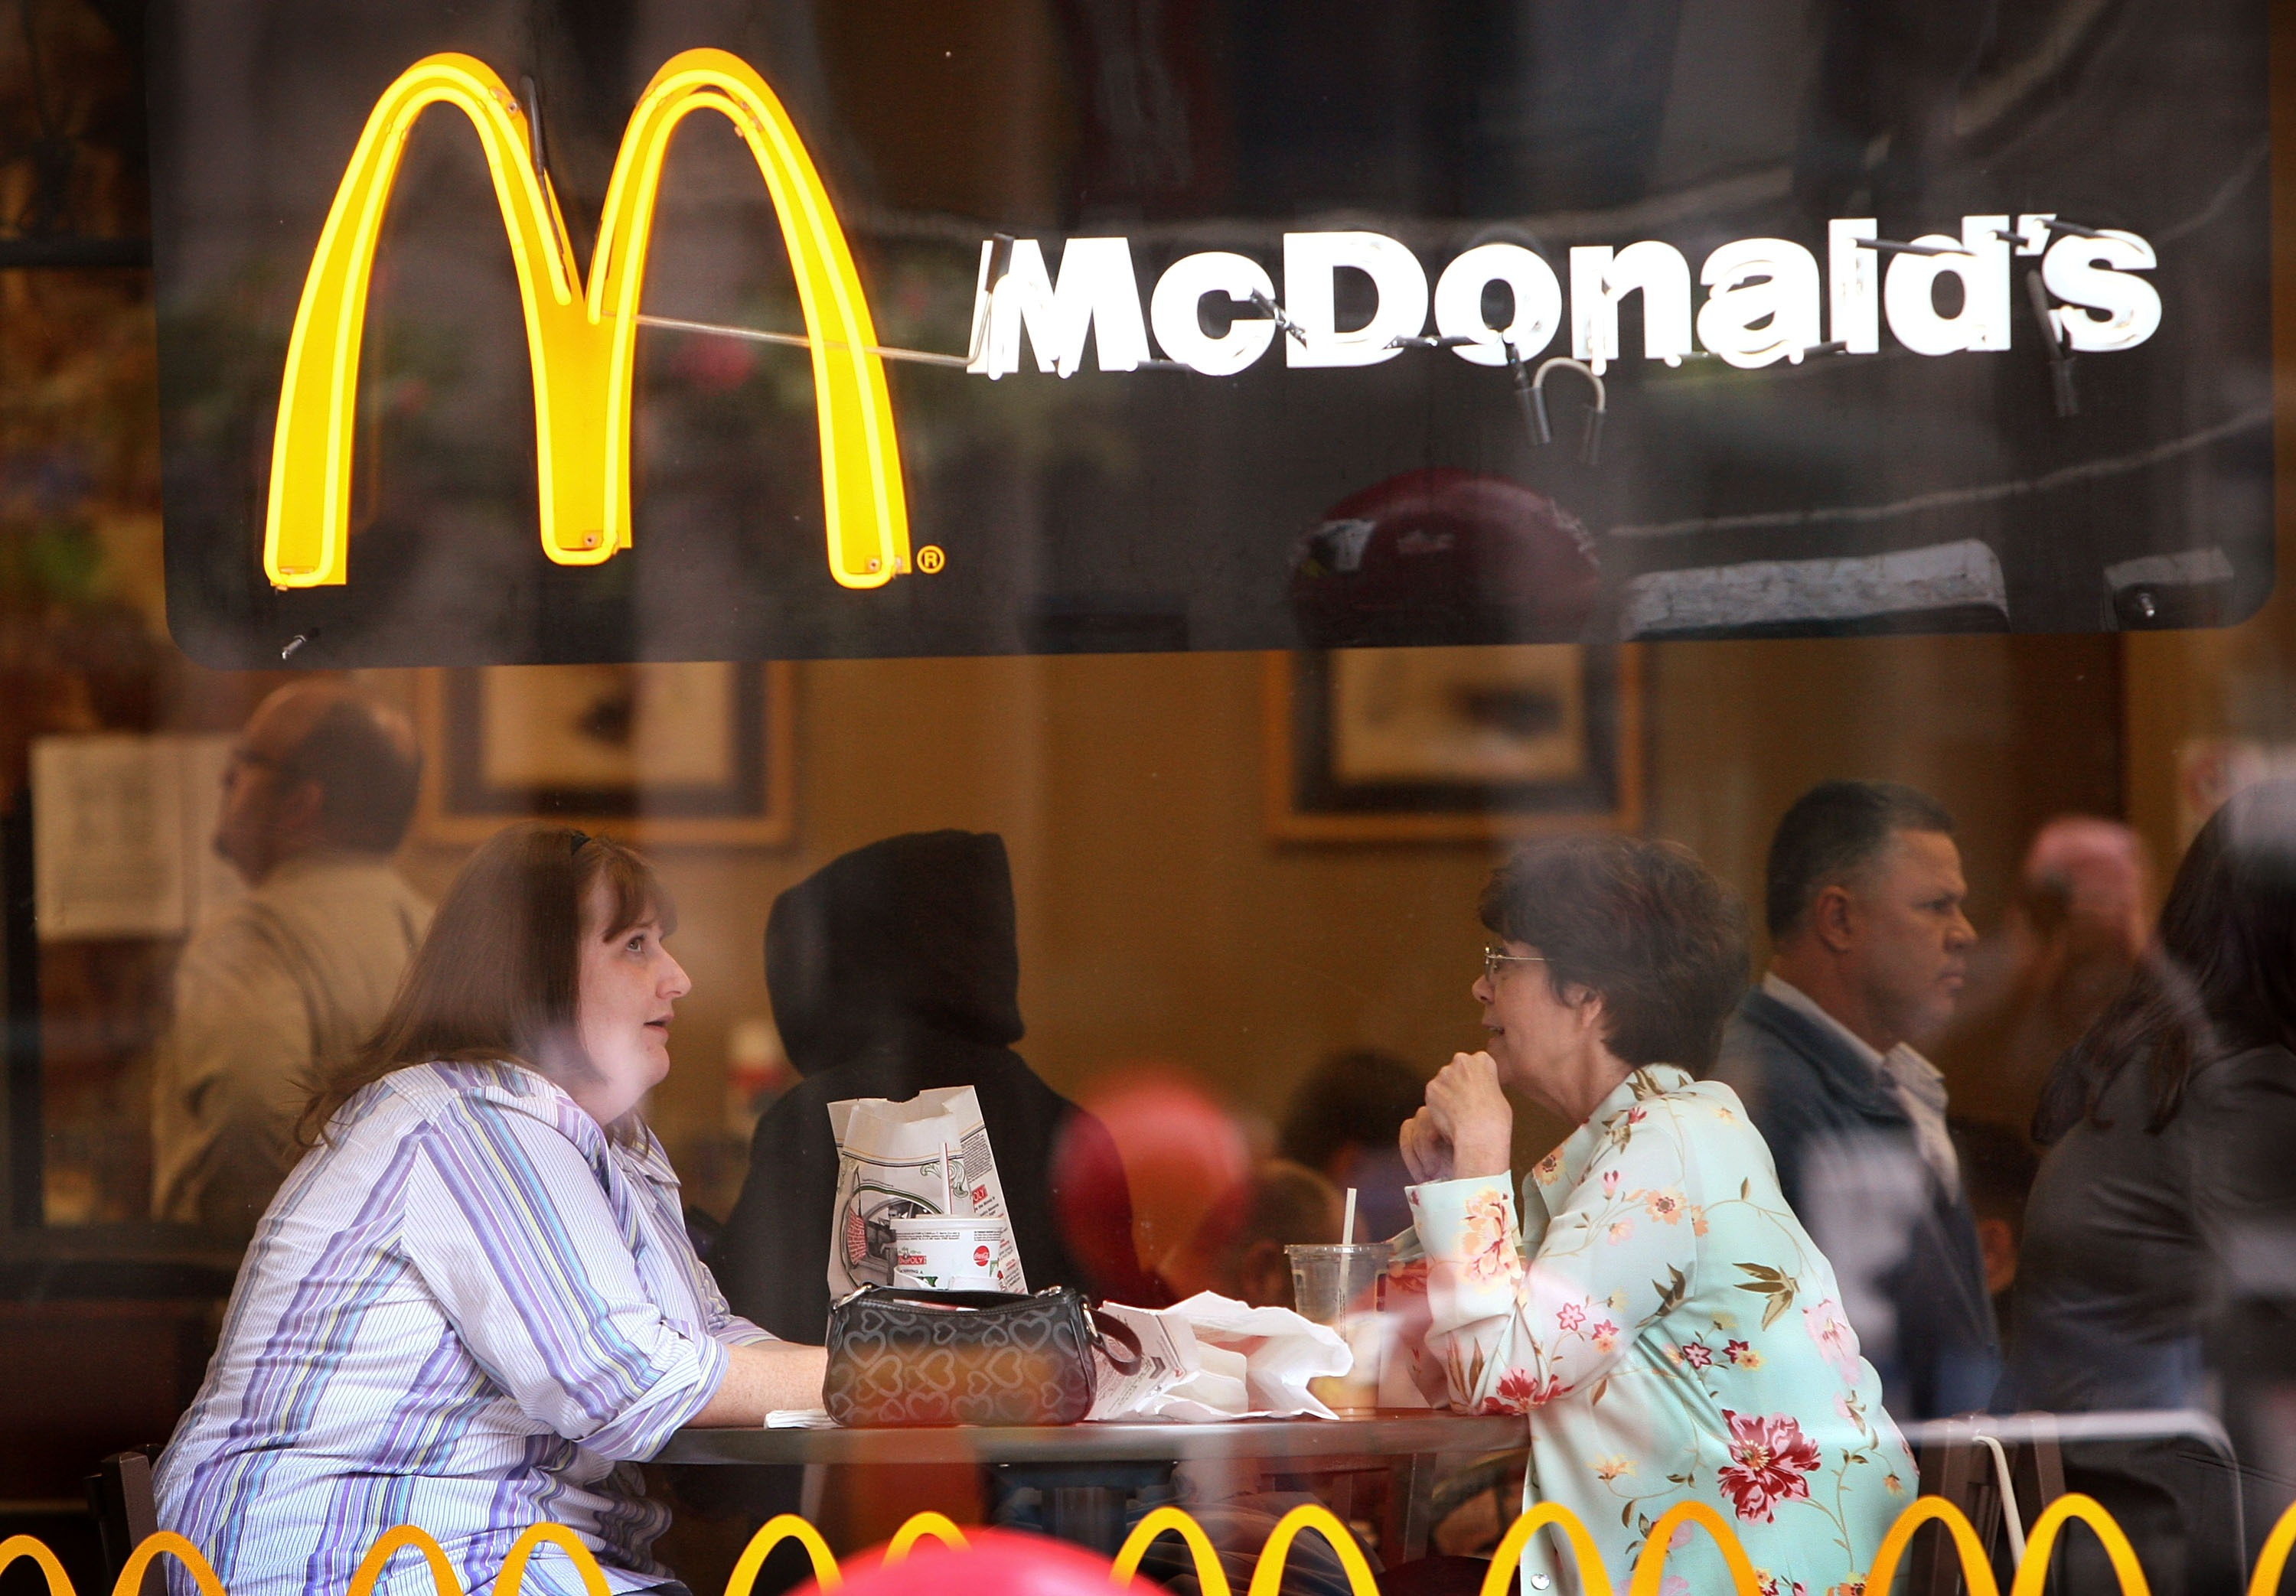 McDonalds Earnings Rise On Value Menu